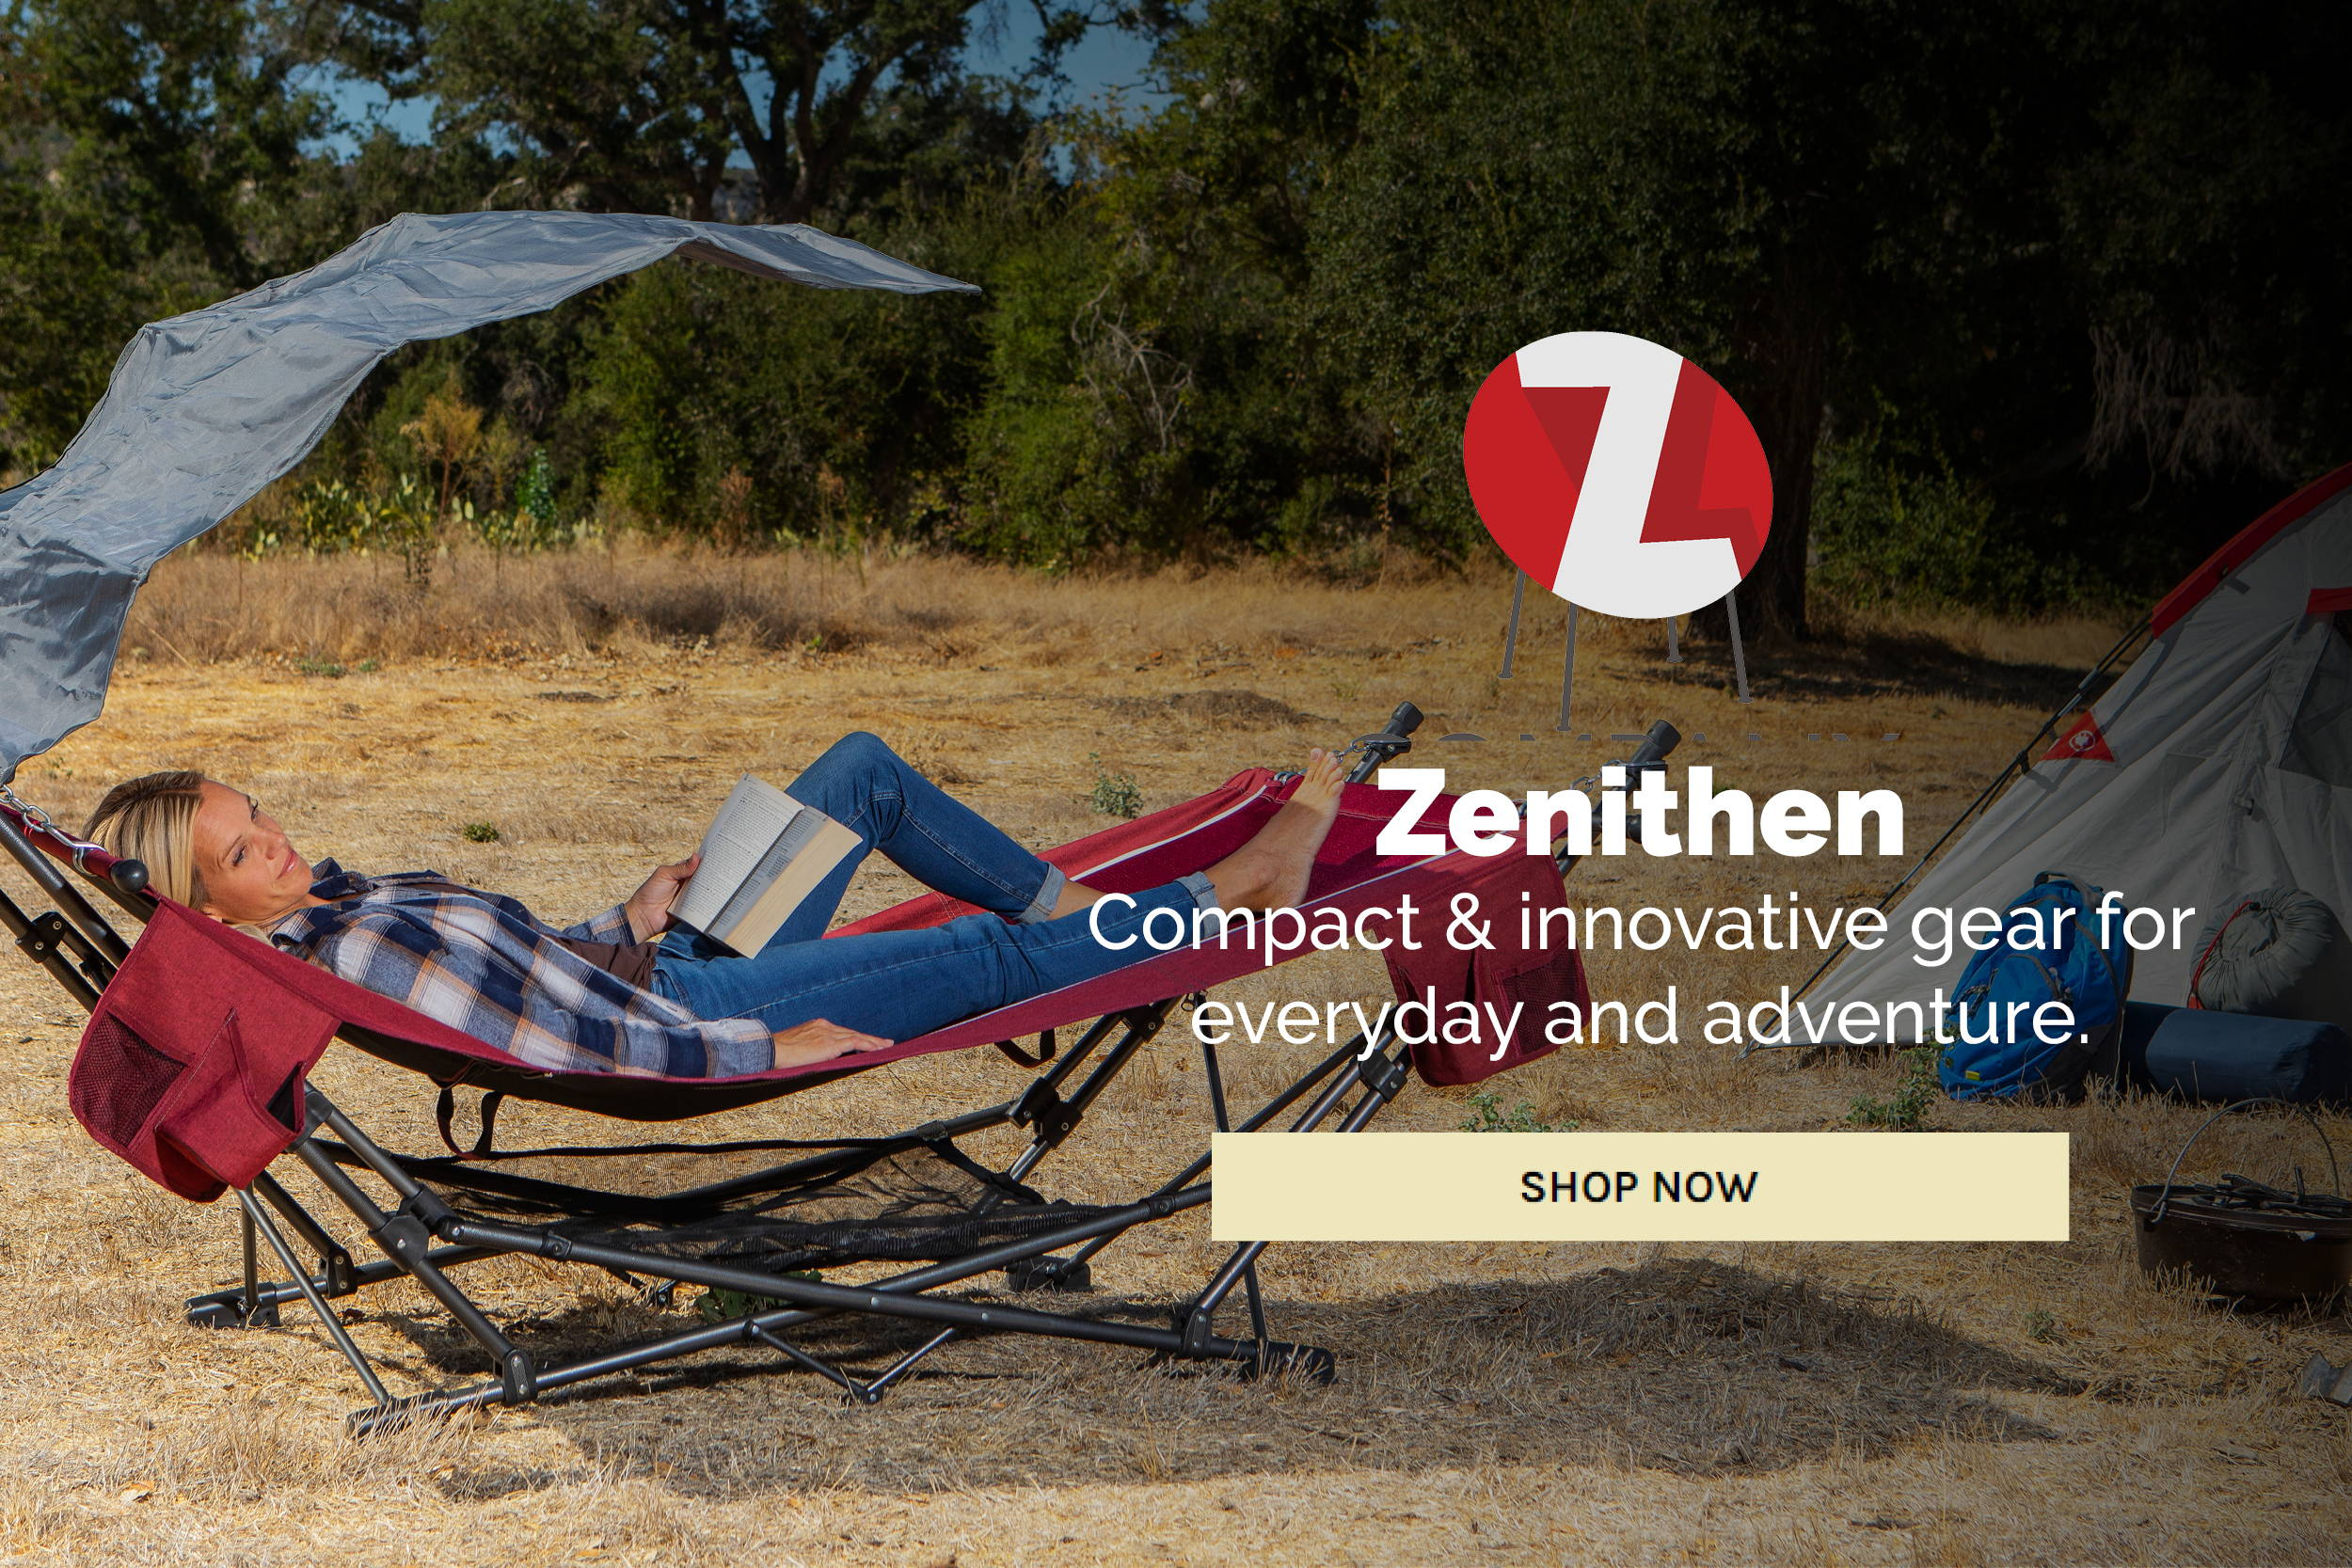 Zenithen. Compact and innovative gear for everyday and adventure. Shop Now.